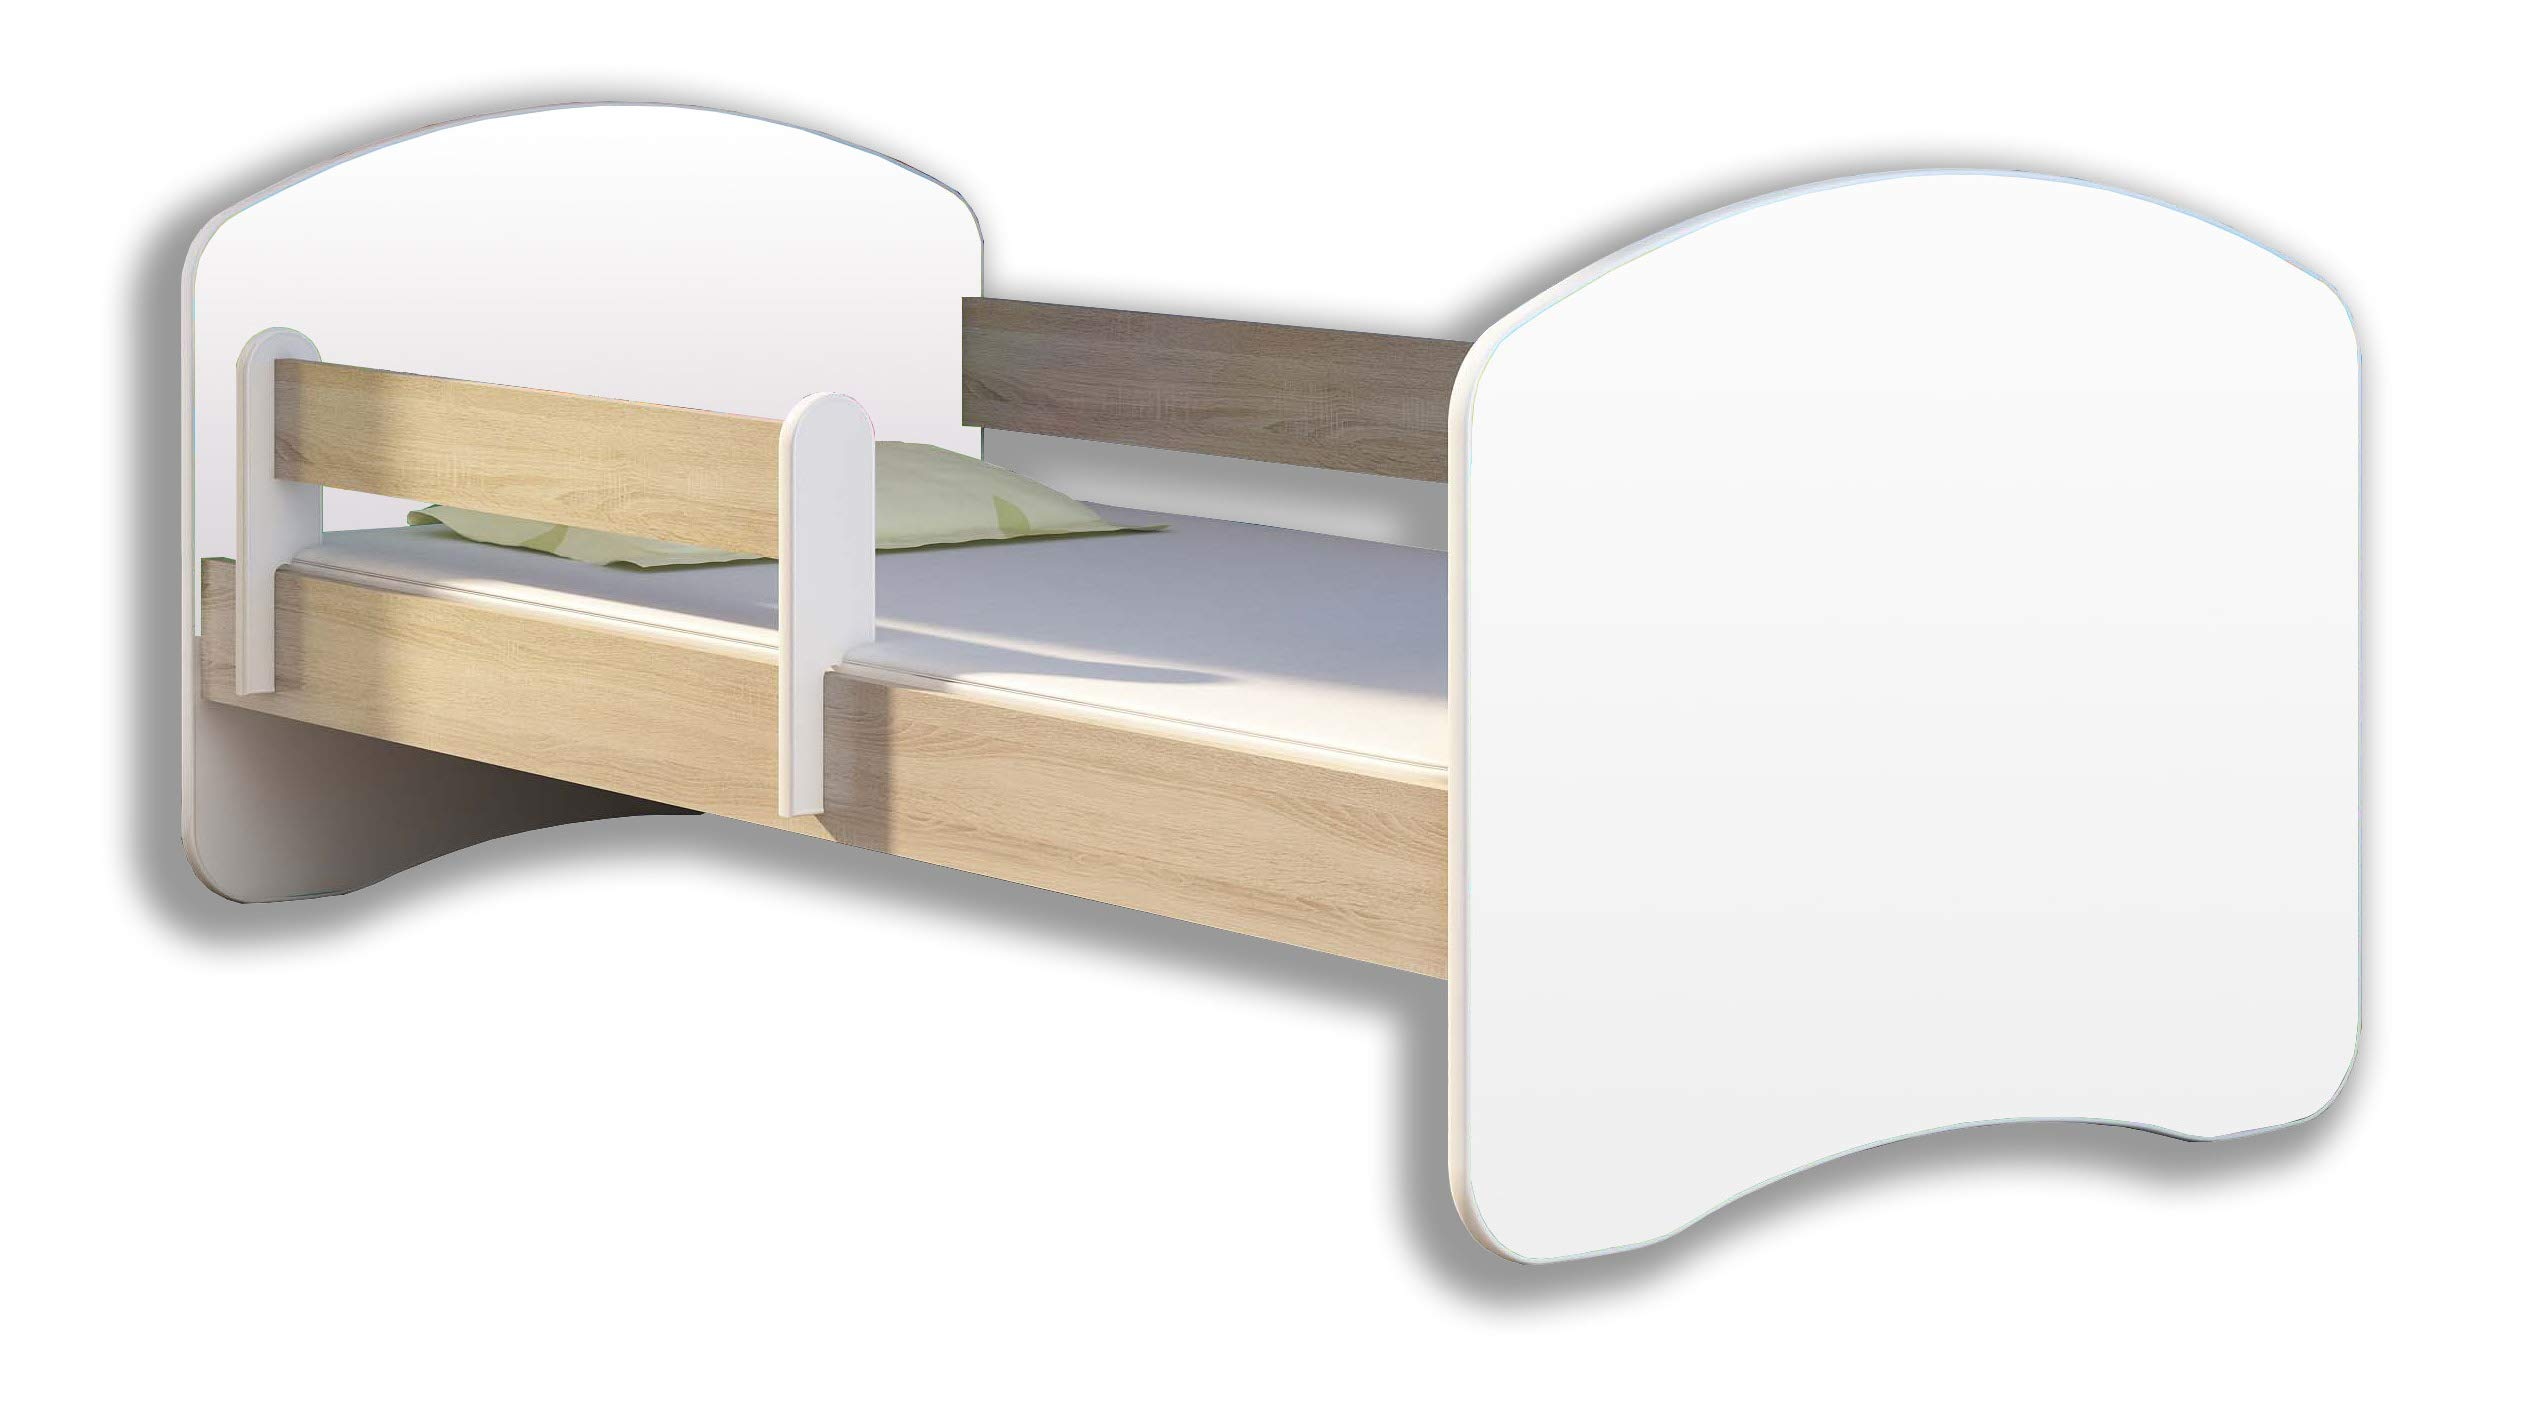 TODDLER CHILDREN KIDS BED + FREE MATTRESS DRAWER ACMA II WHITE (Sonoma Wood, 140x70 cm) ACMA Dimensions : 144 cm x 75 cm x 62 cm For safety all the edges of the bed are covered with a special PCV material The bed is proper for kids up to 100 kg 1